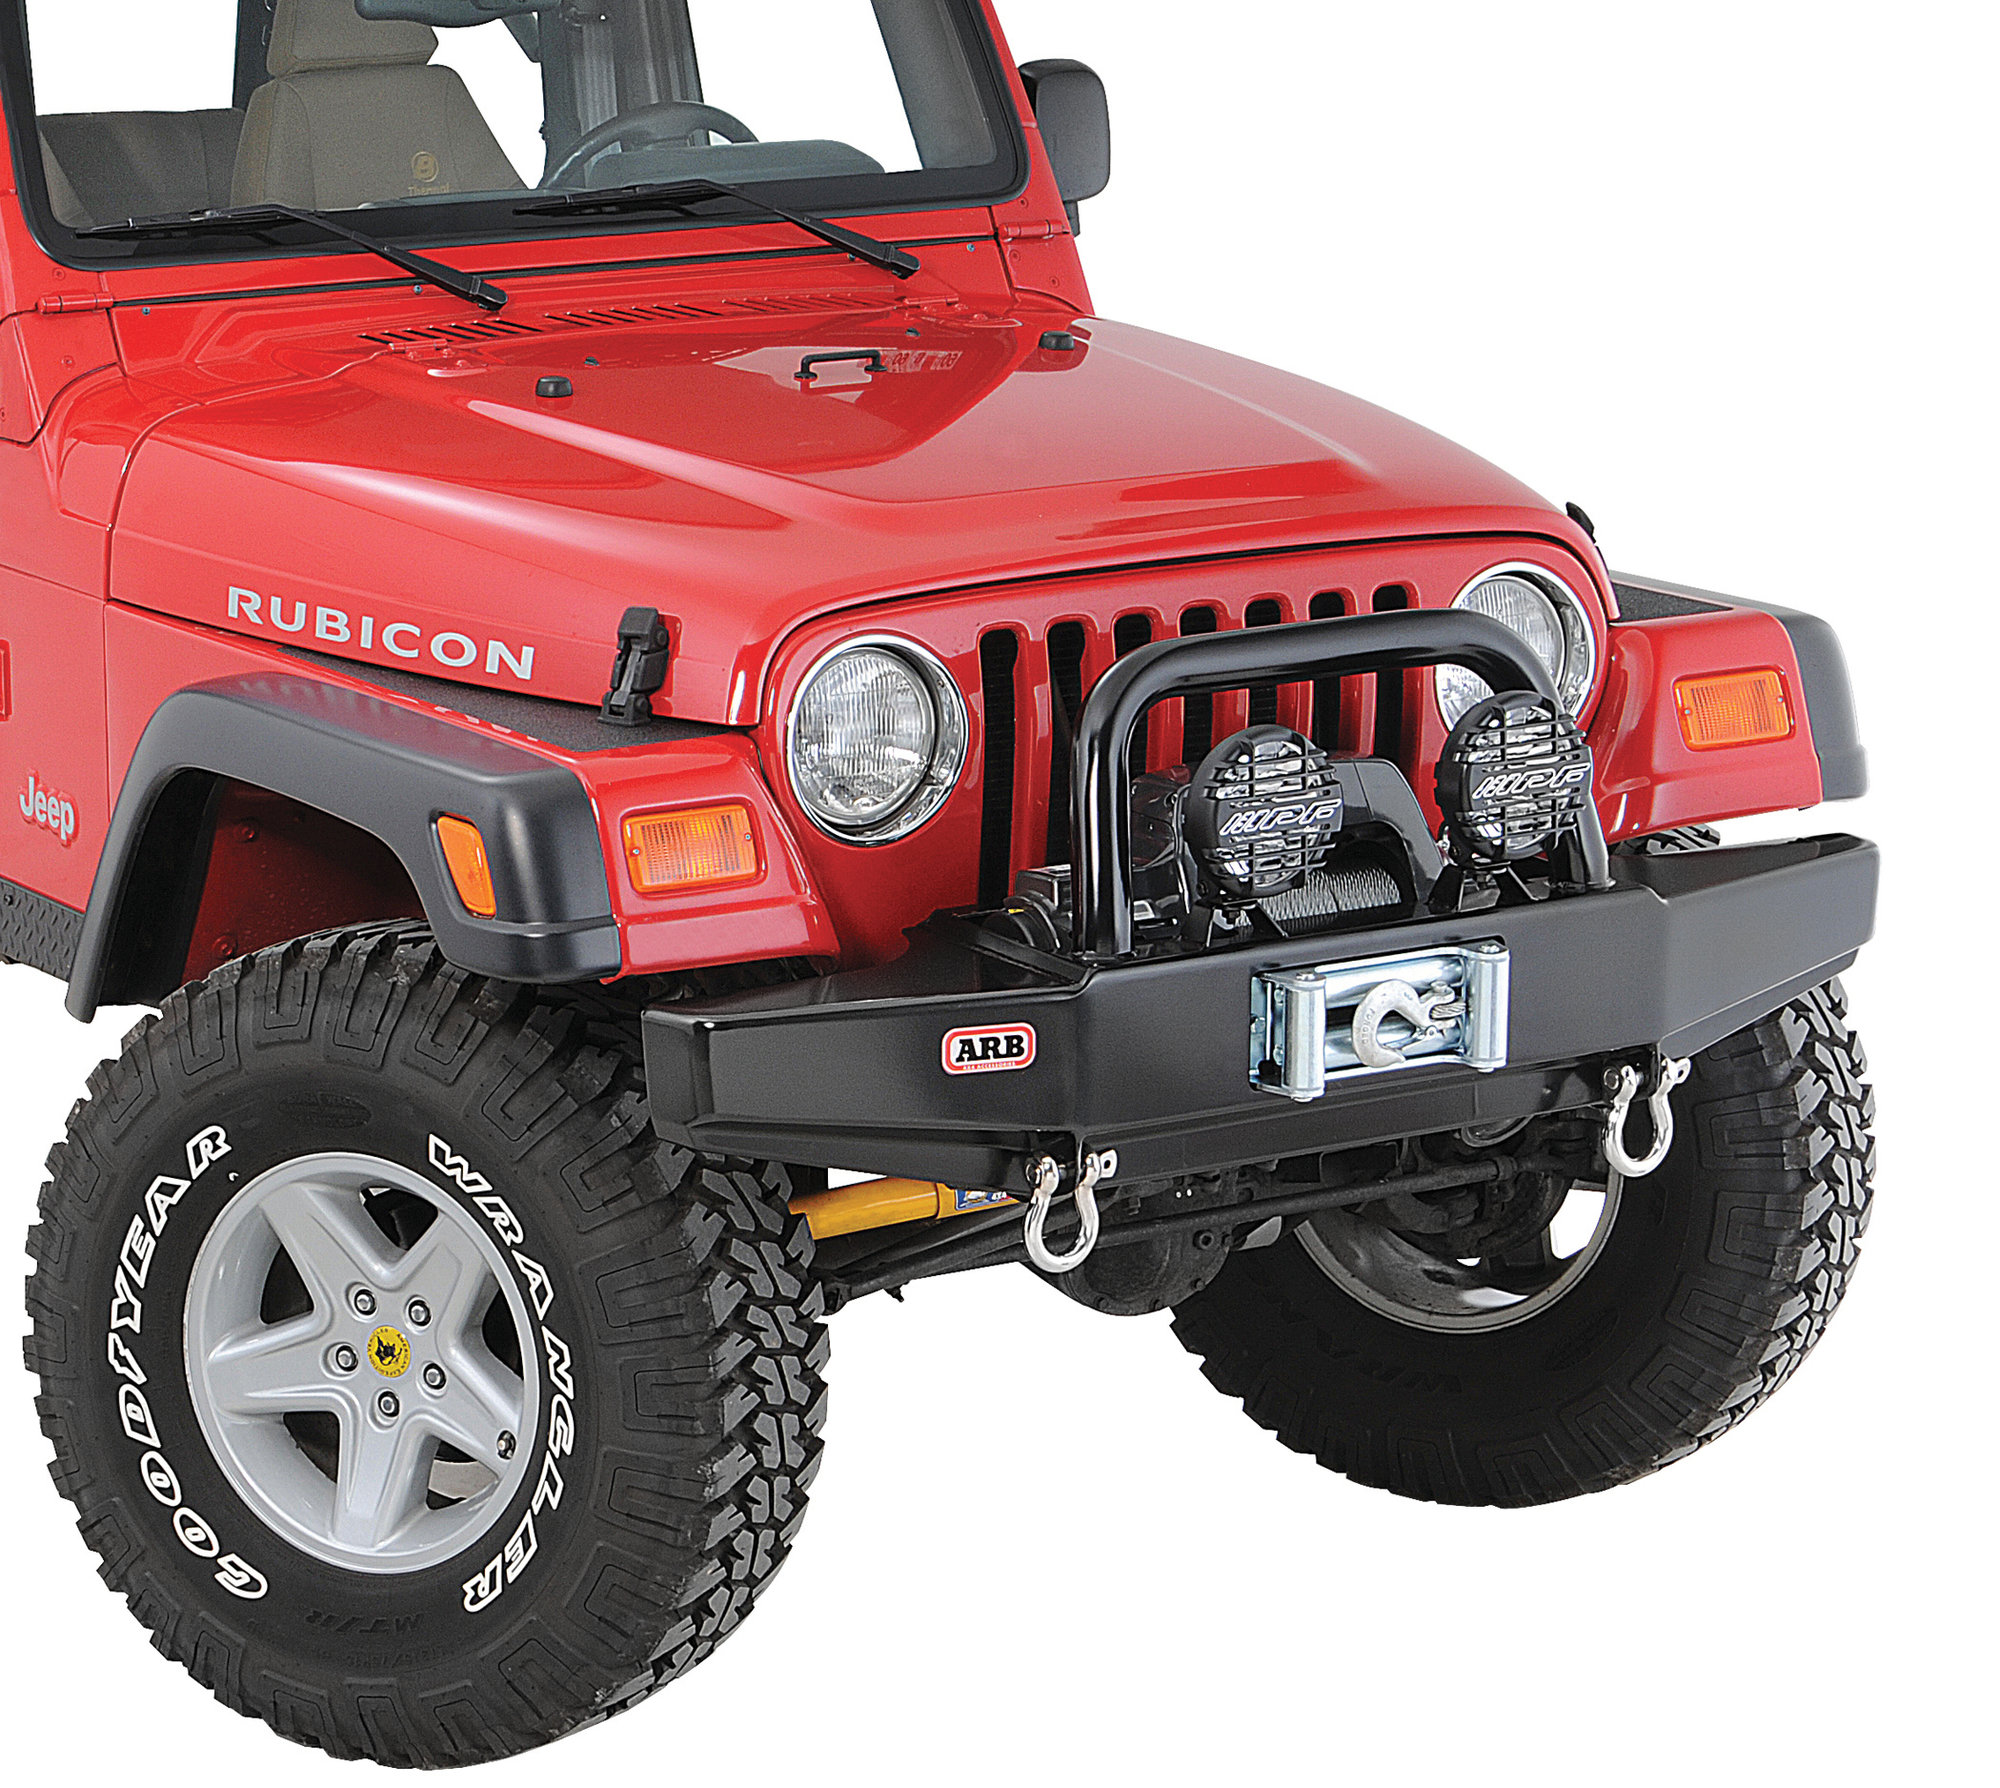 hight resolution of arb 3450150 quadratec edition front stubby bull bar bumper for 87 06 jeep wrangler yj tj unlimited quadratec